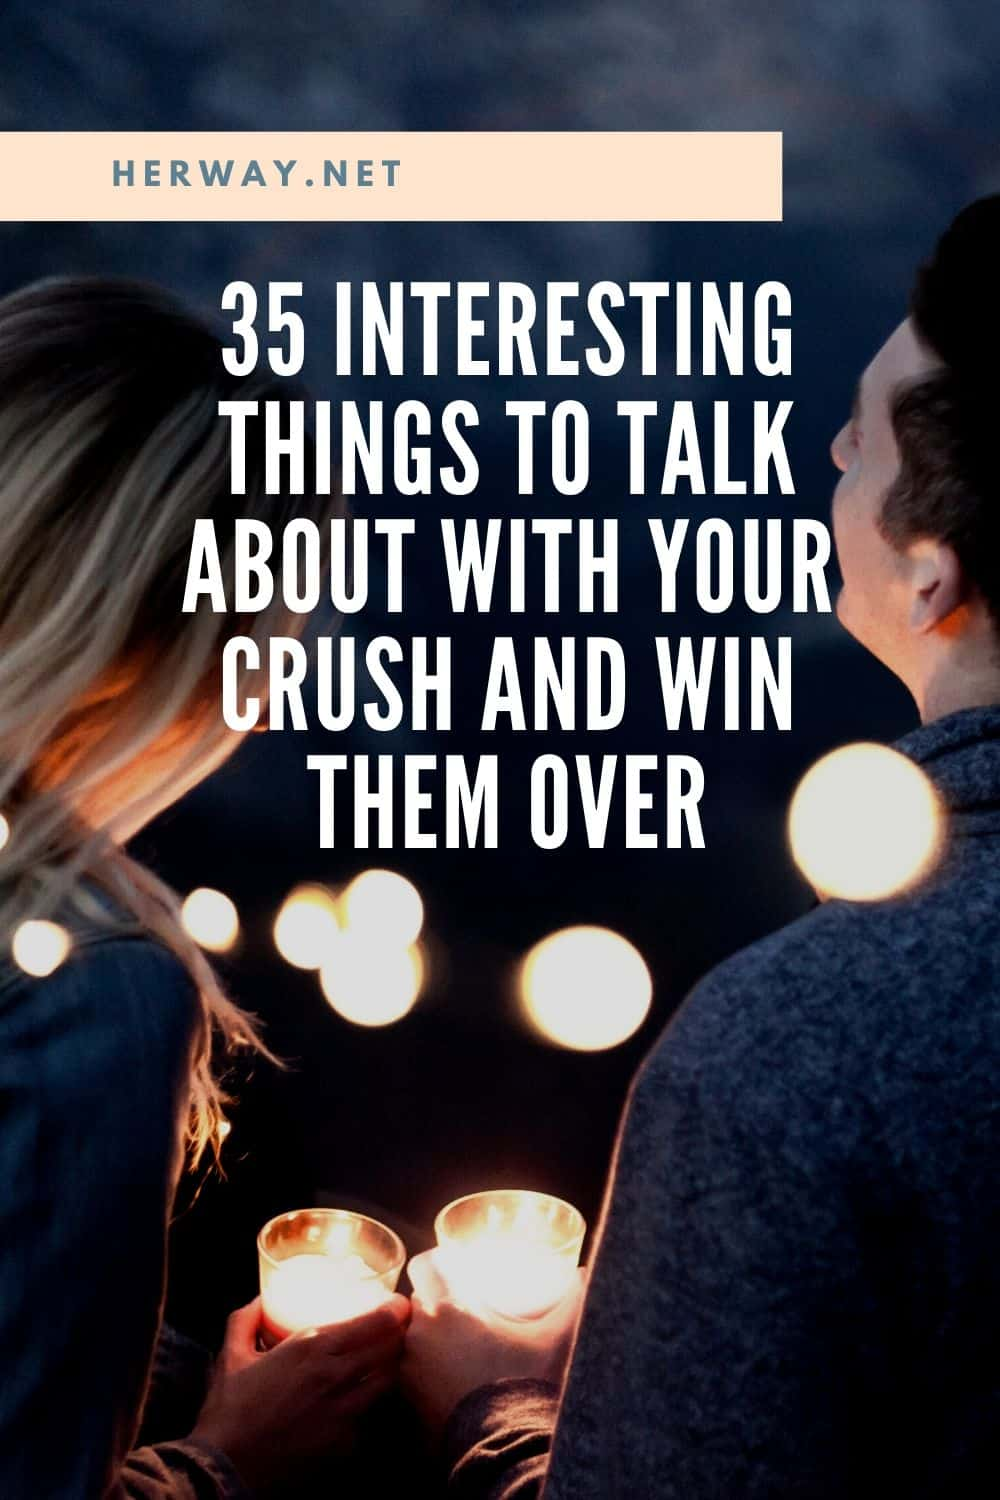 35 Interesting Things To Talk About With Your Crush And Win Them Over Pinterest